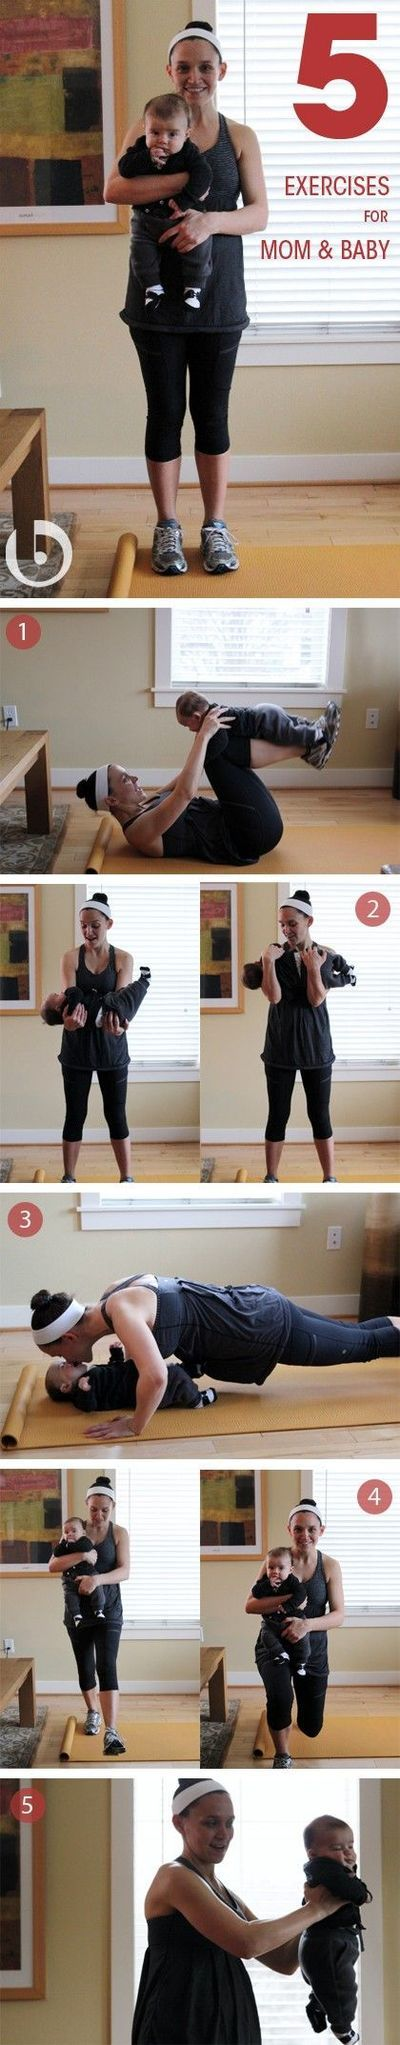 Mommy and baby exercises. Works with toddlers too.